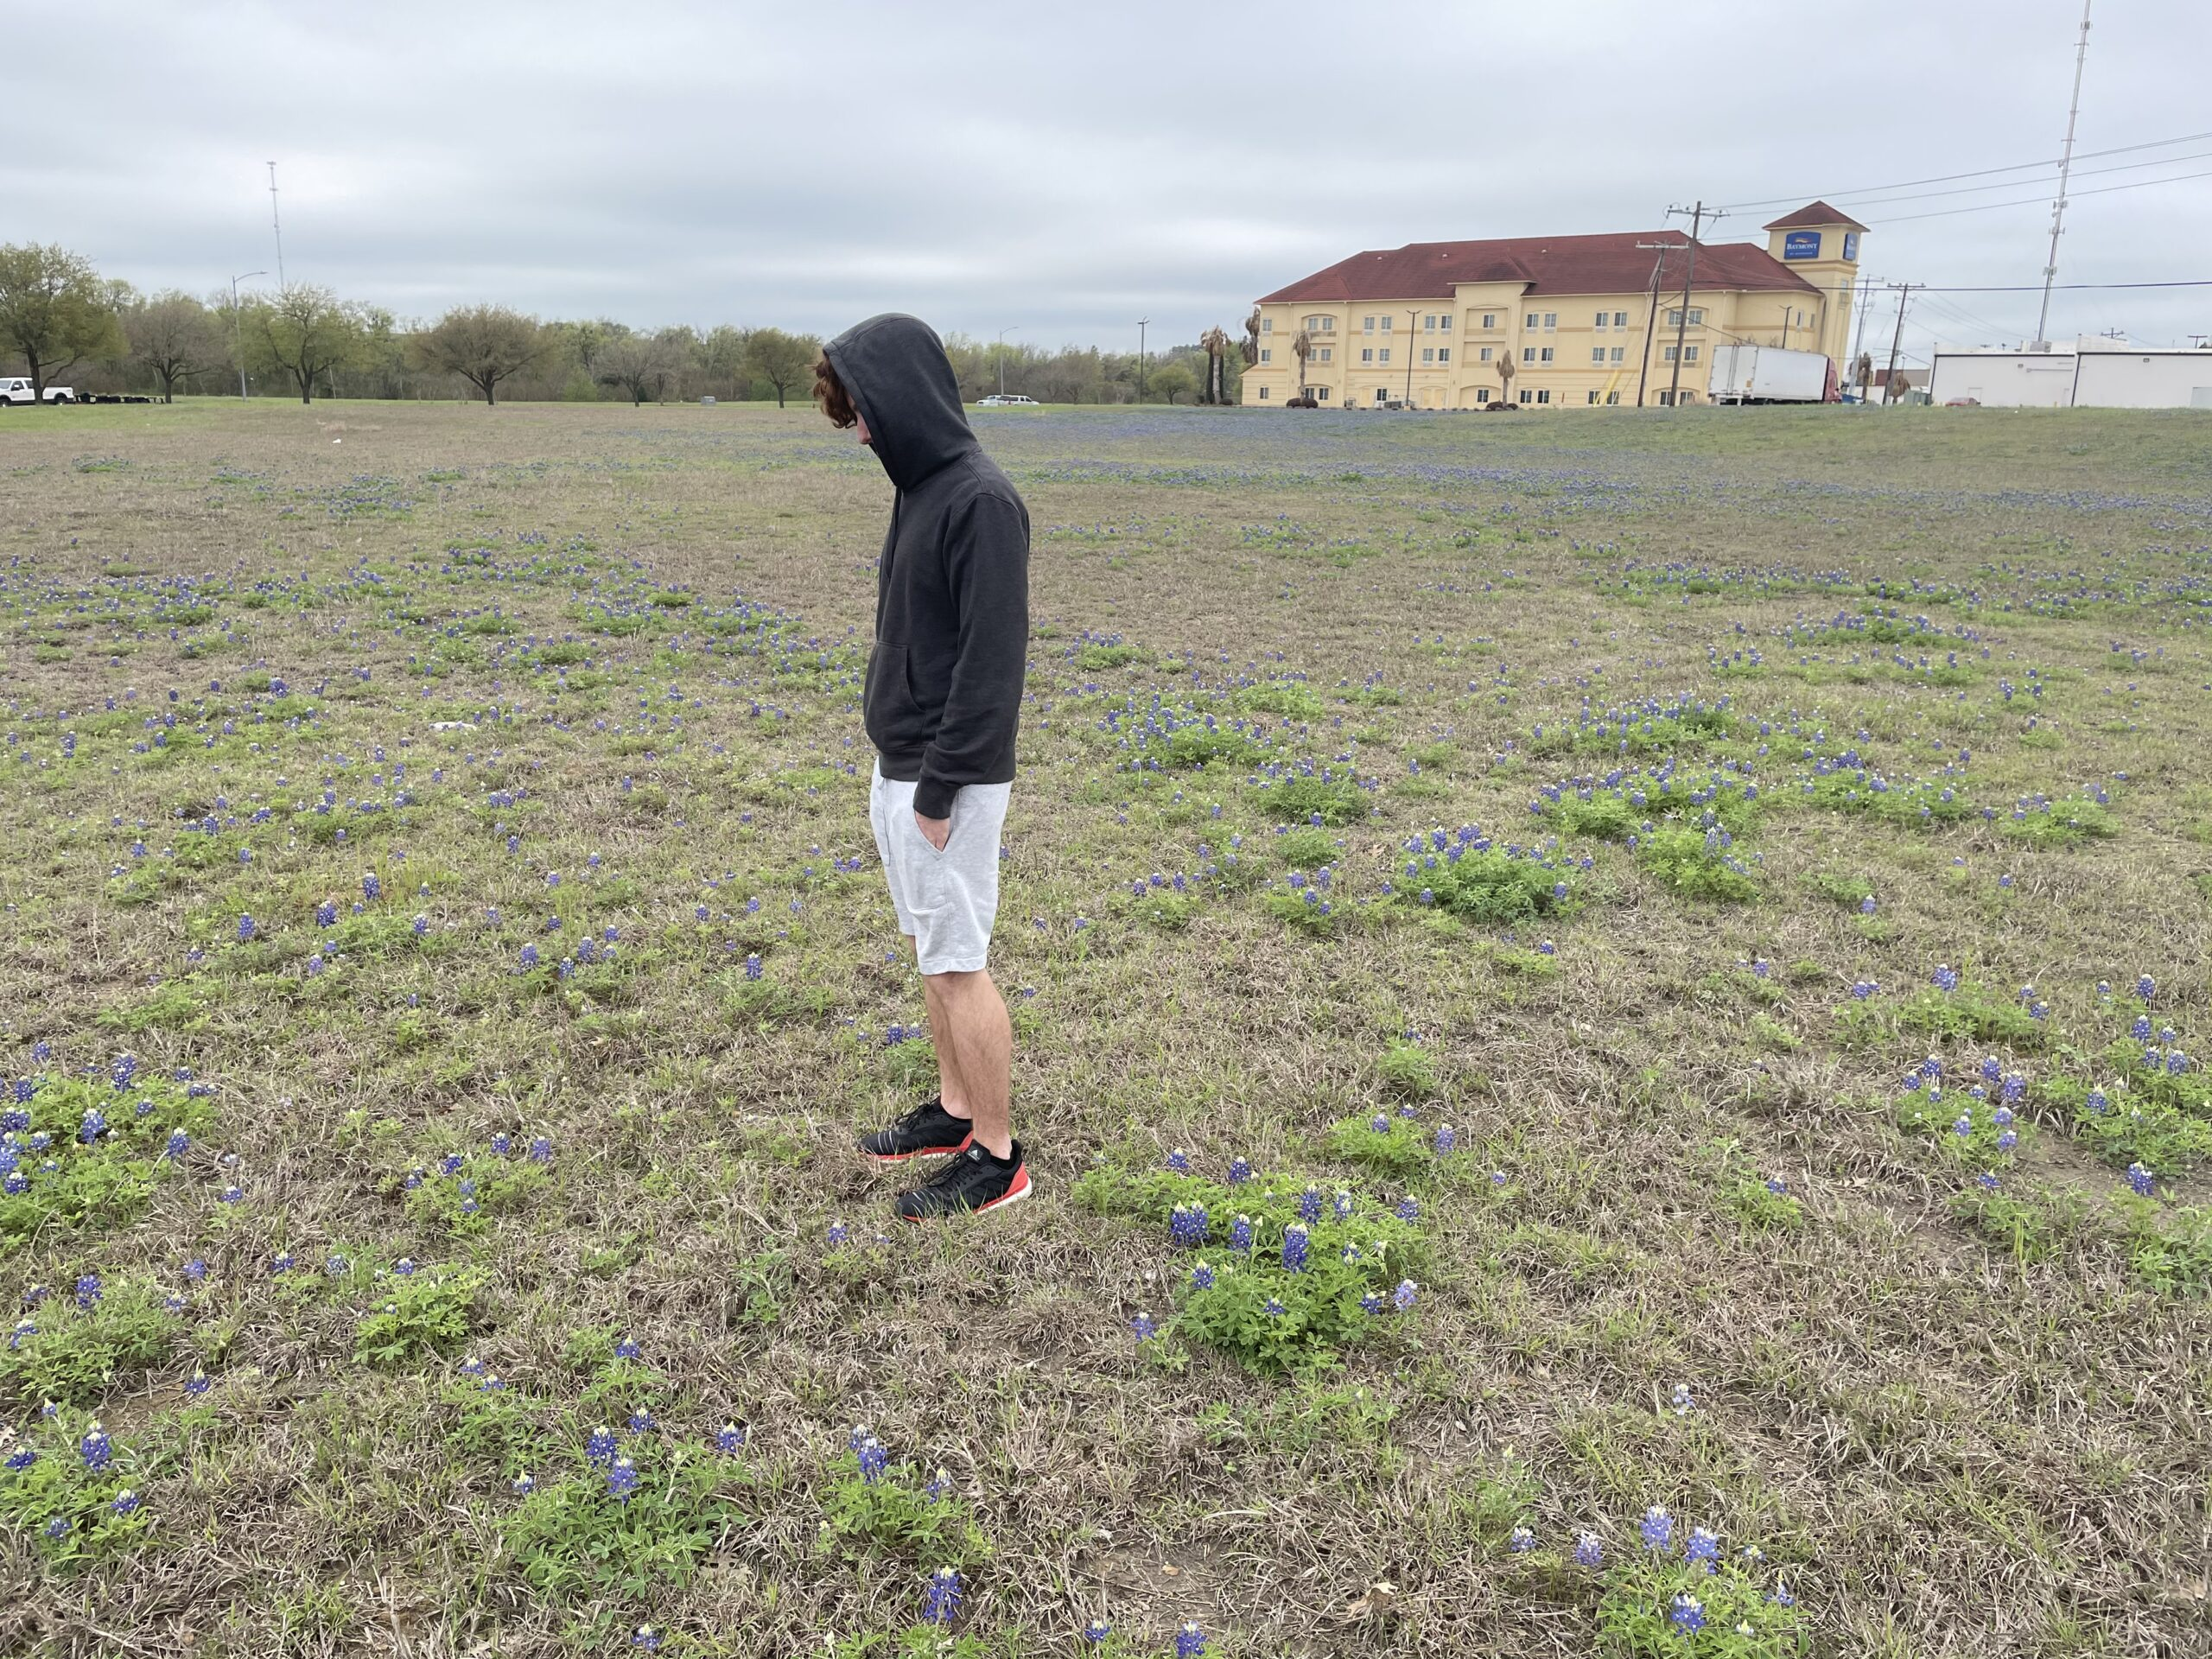 teenager in hooded sweatshirt and shorts standing in field of bluebonnets brenham